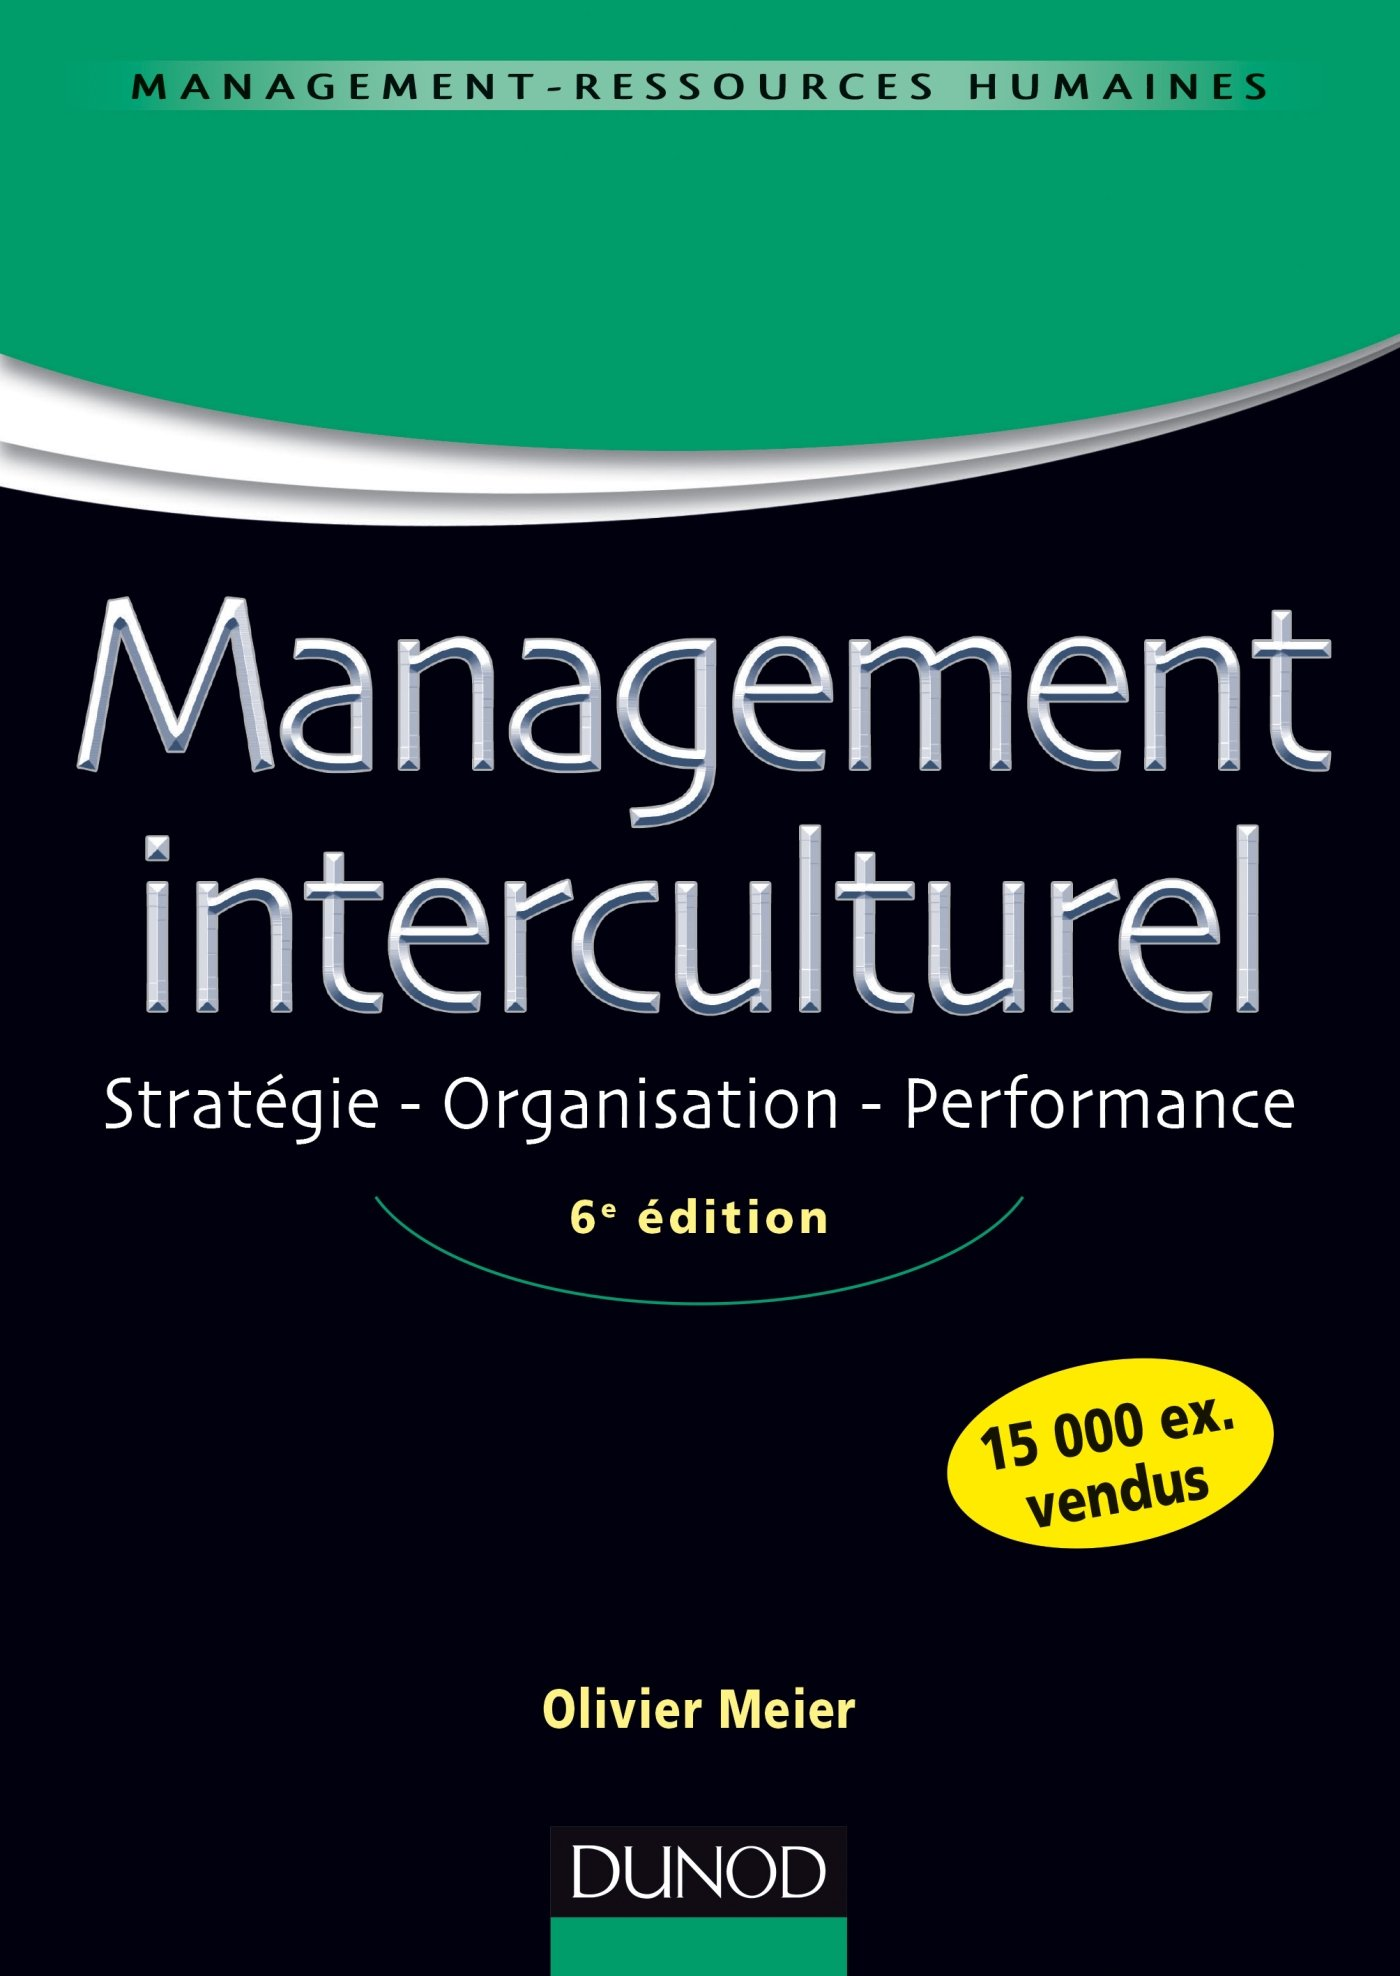 télécharger Management interculturel : Stratégie, Organisation, Performance